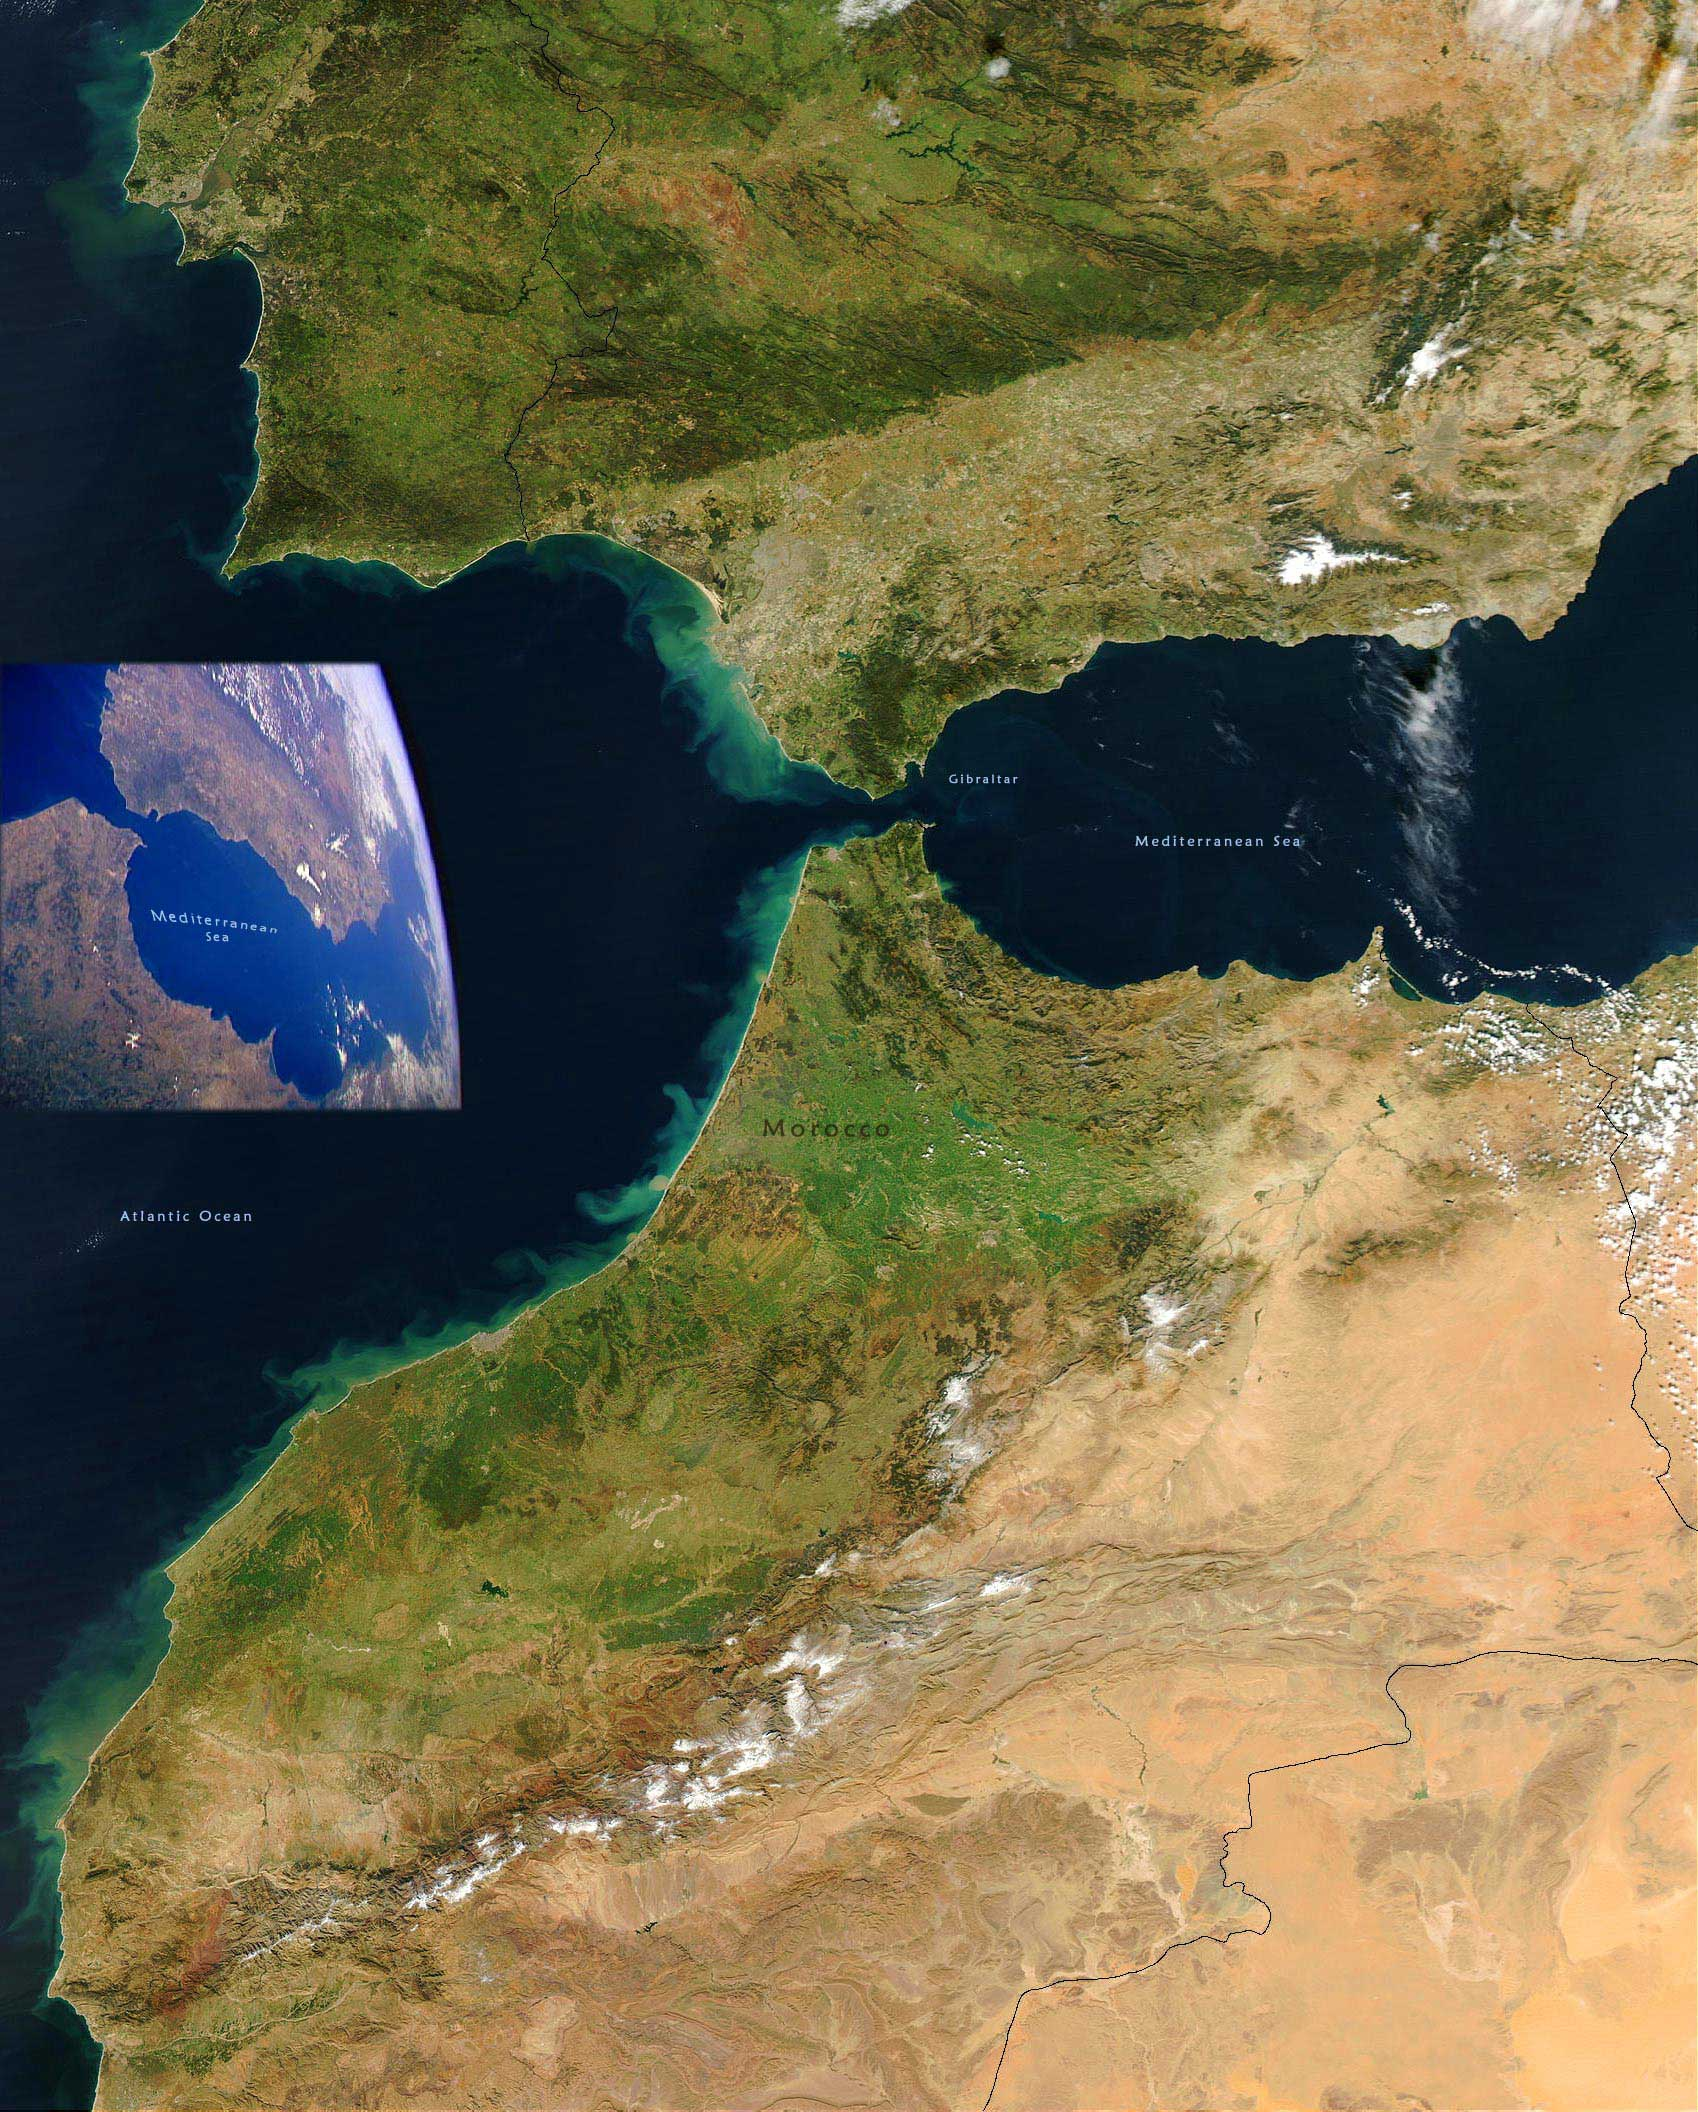 Morocco Spain Satellite Image large map